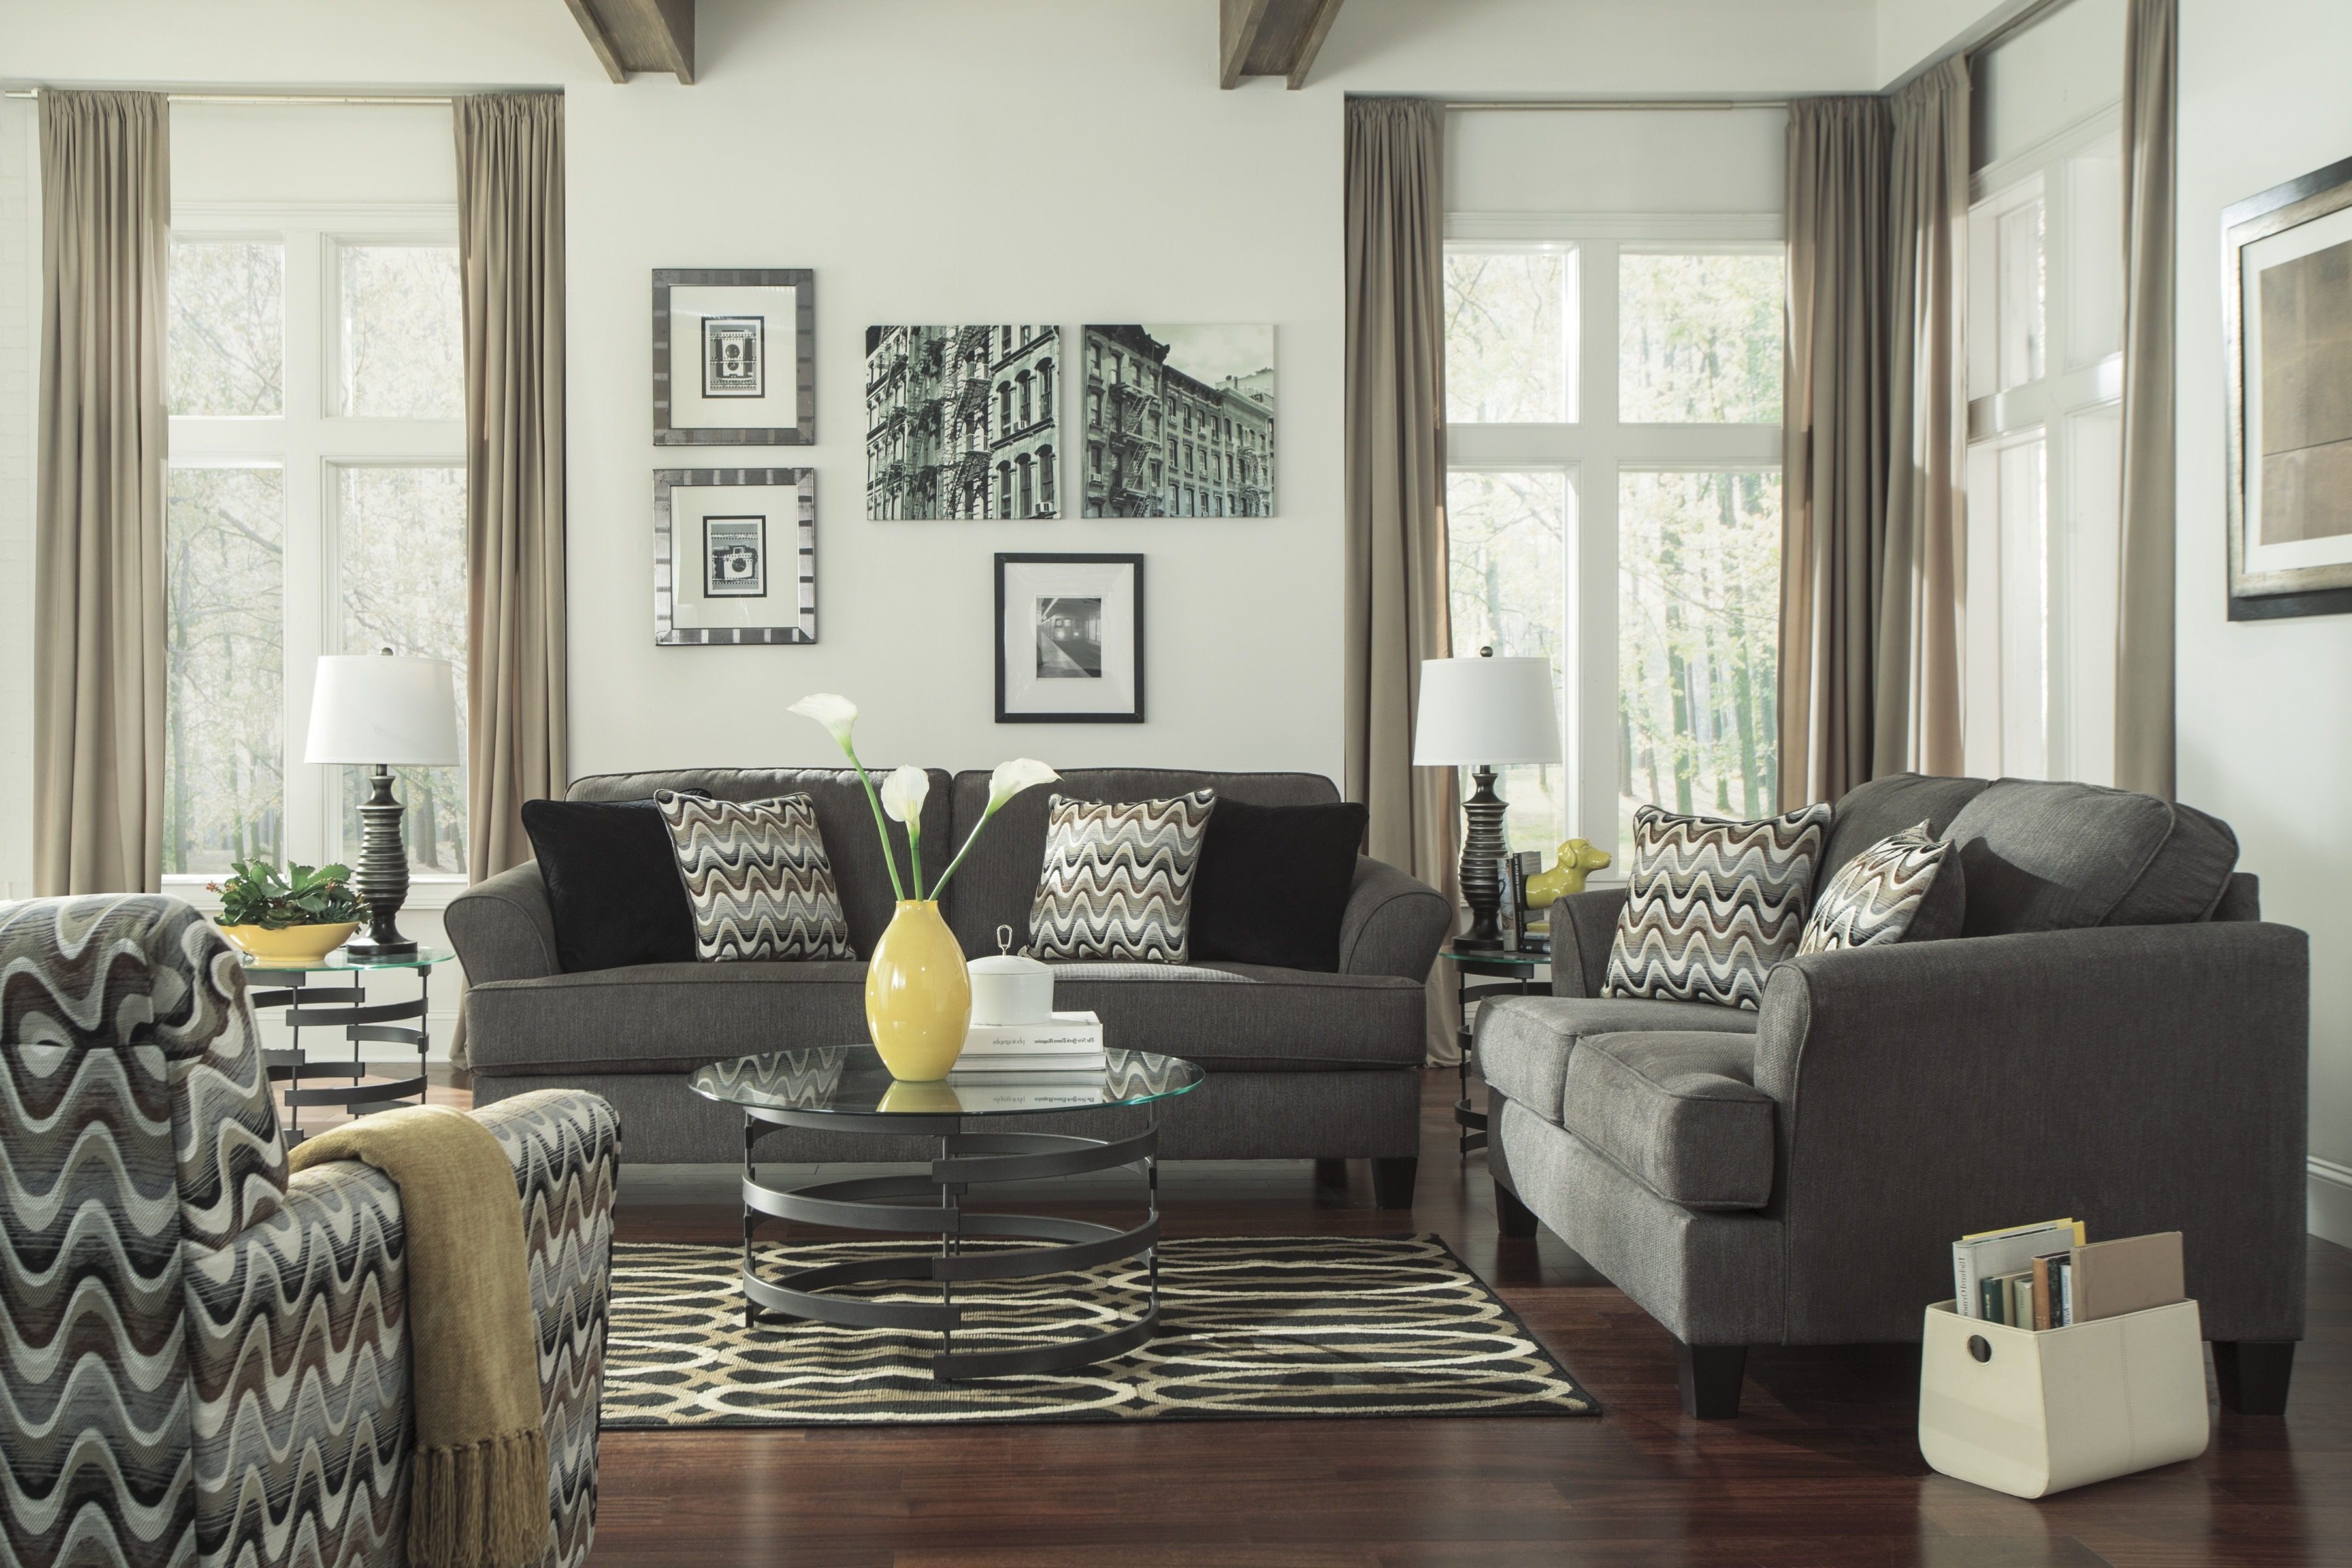 Sofa And Accent Chair Sets With Regard To Recent Ashley Furniture Gayler Steel 3Pc Living Room Set (View 12 of 15)